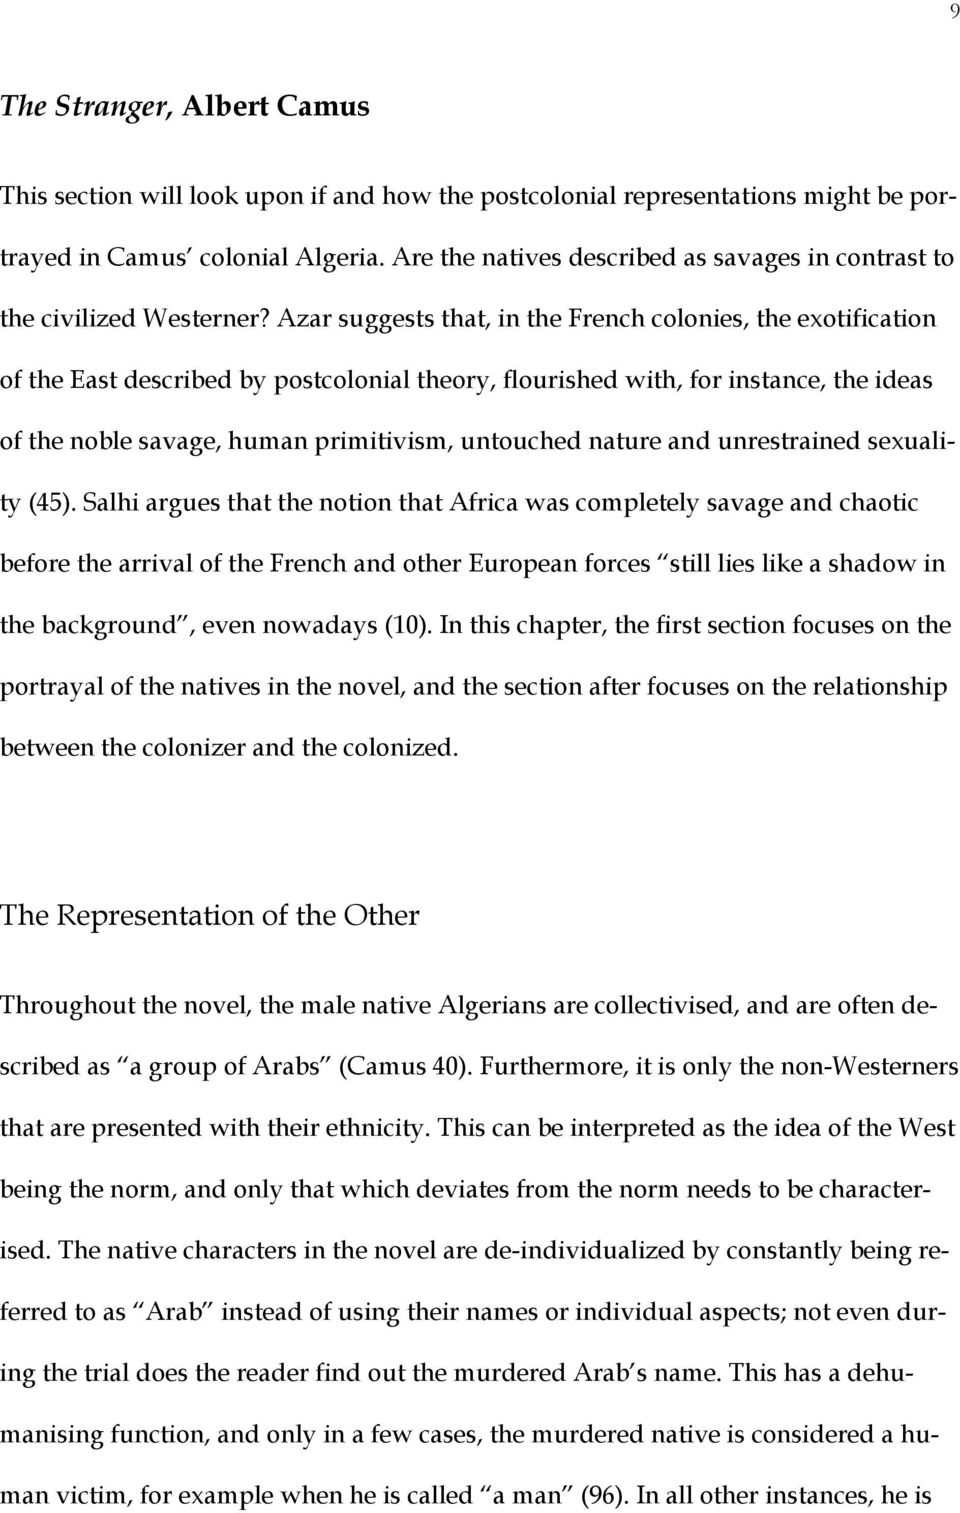 Azar suggests that, in the French colonies, the exotification of the East described by postcolonial theory, flourished with, for instance, the ideas of the noble savage, human primitivism, untouched